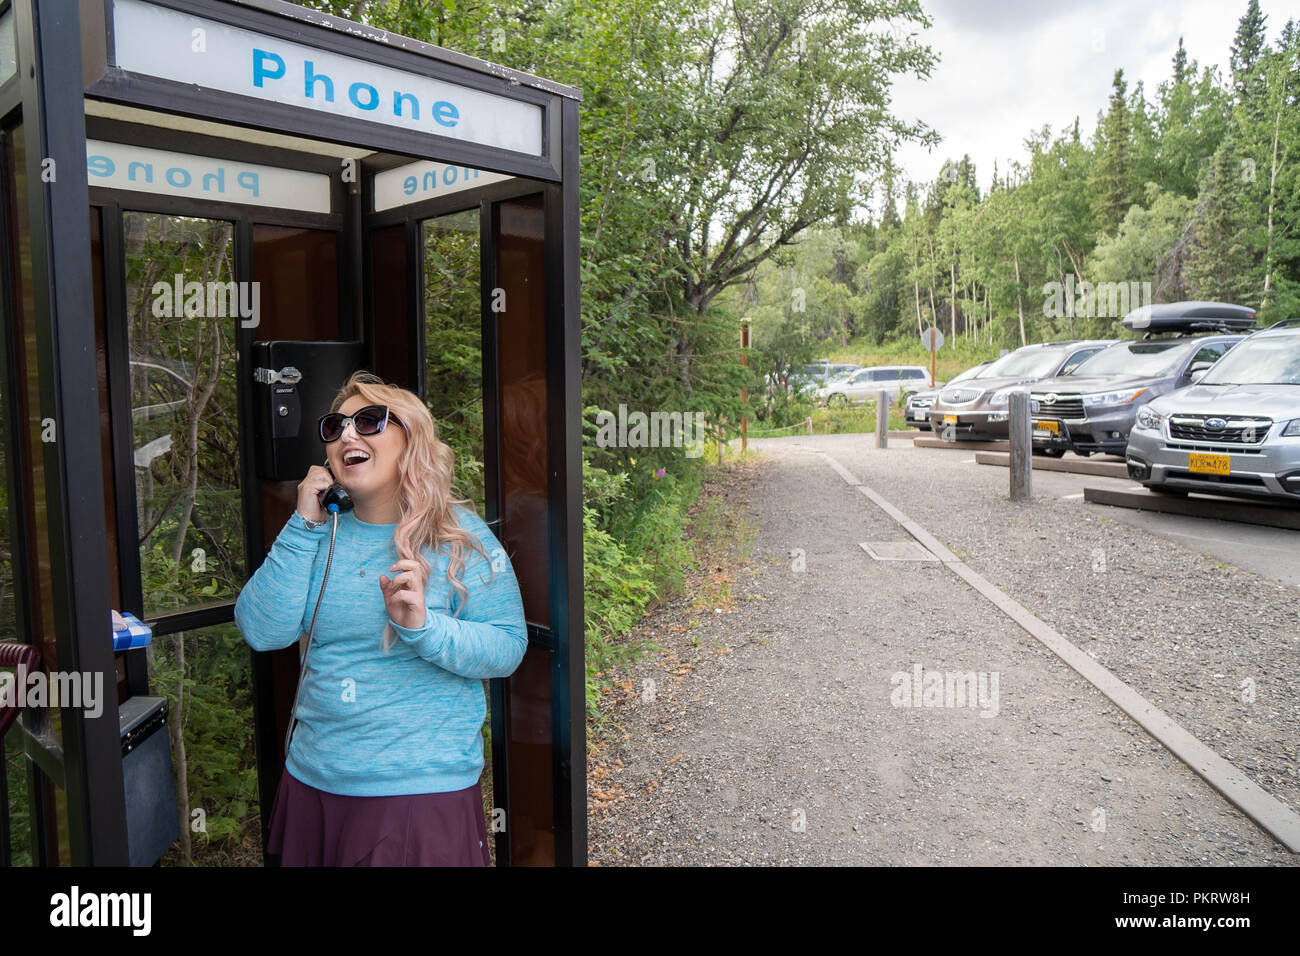 Blonde female talks on a landline telephone in a retro phone booth. Concept for retro technology, outdated technology - Stock Image